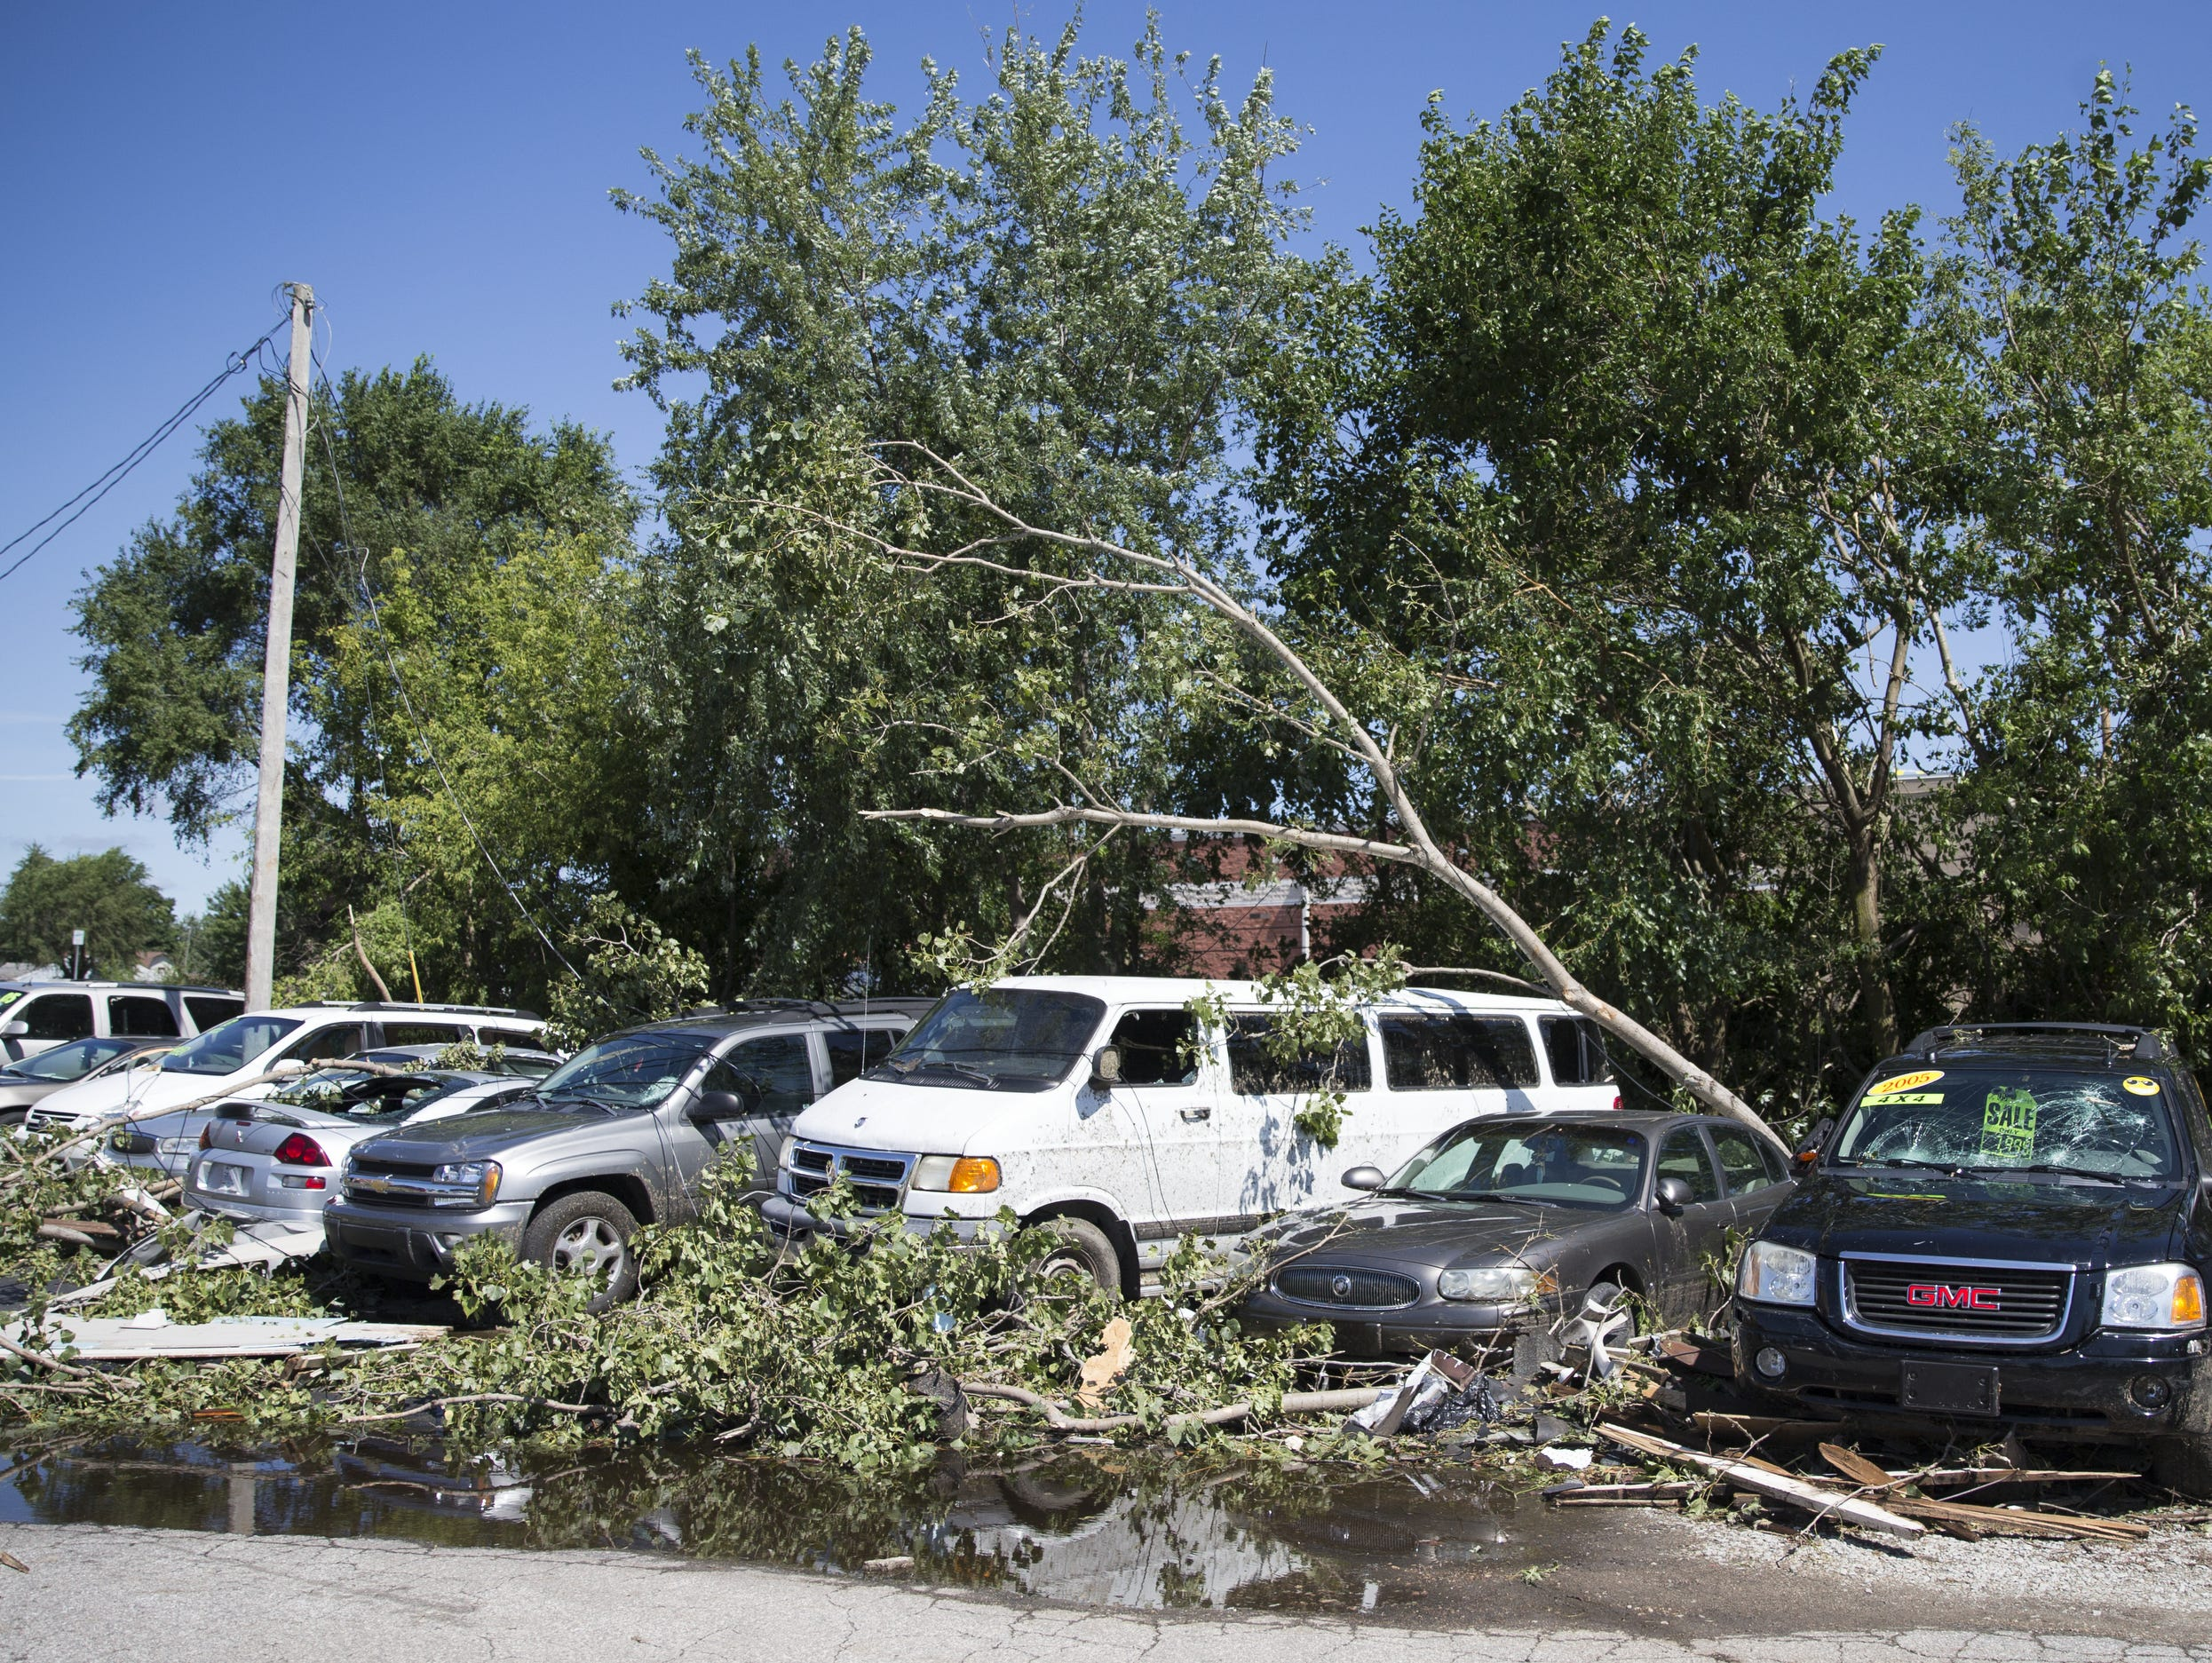 Tornado damage a day after a tornado displaced dozens of families in the central Indiana town, Kokomo, Thursday, August 25, 2016.